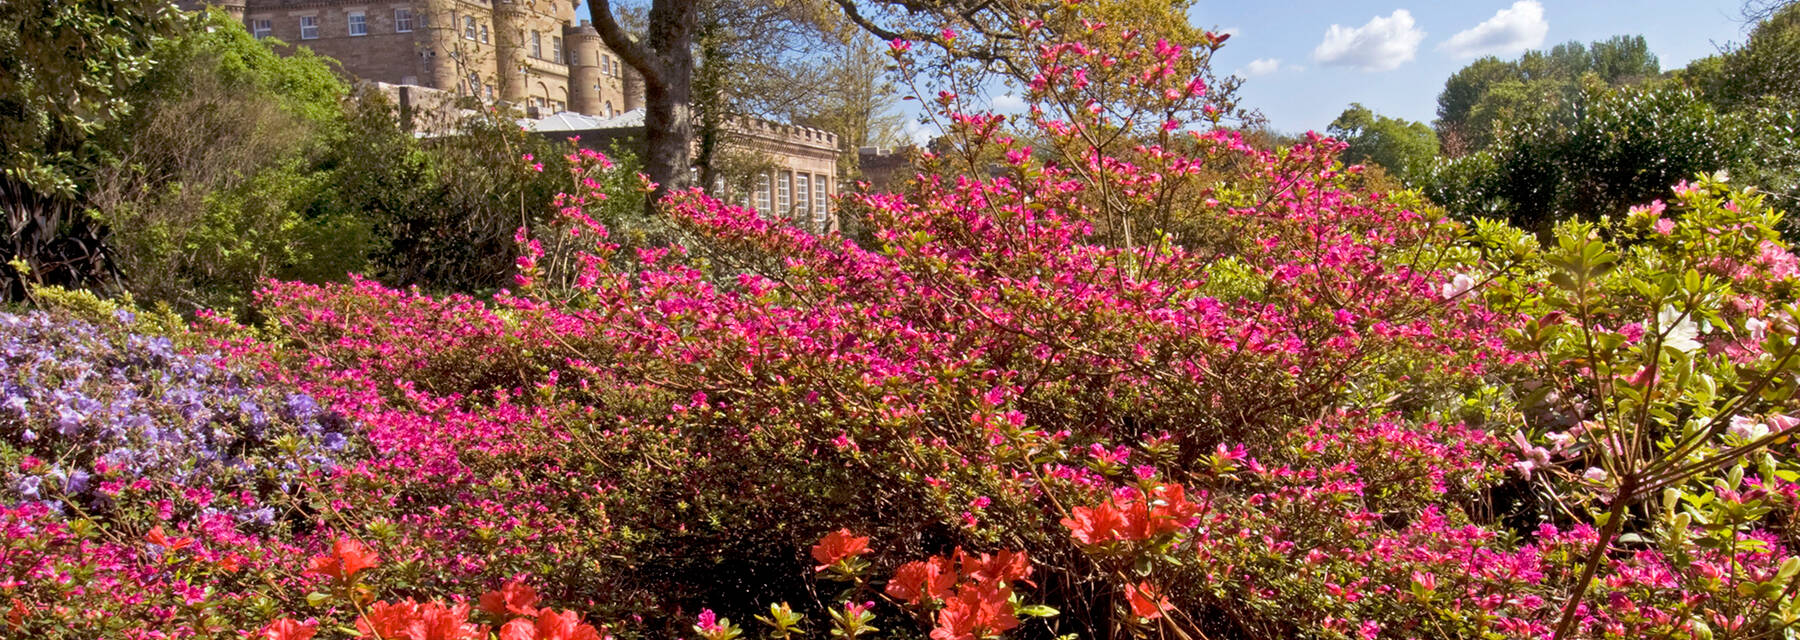 A bright and colourful display of flowers, with Culzean Castle seen in the background on a sunny day.